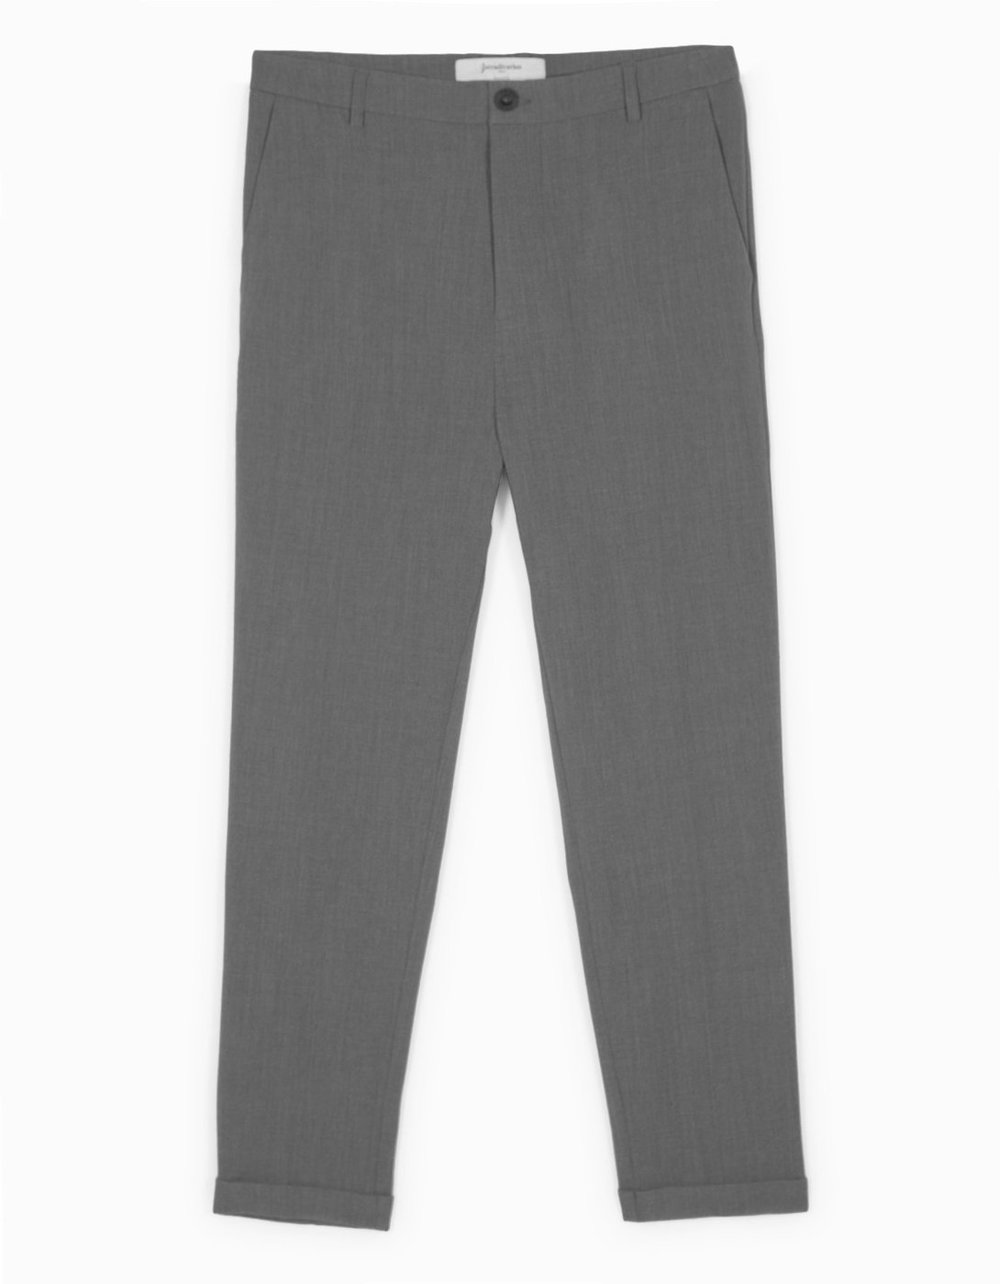 Stradivarius Grey Trousers